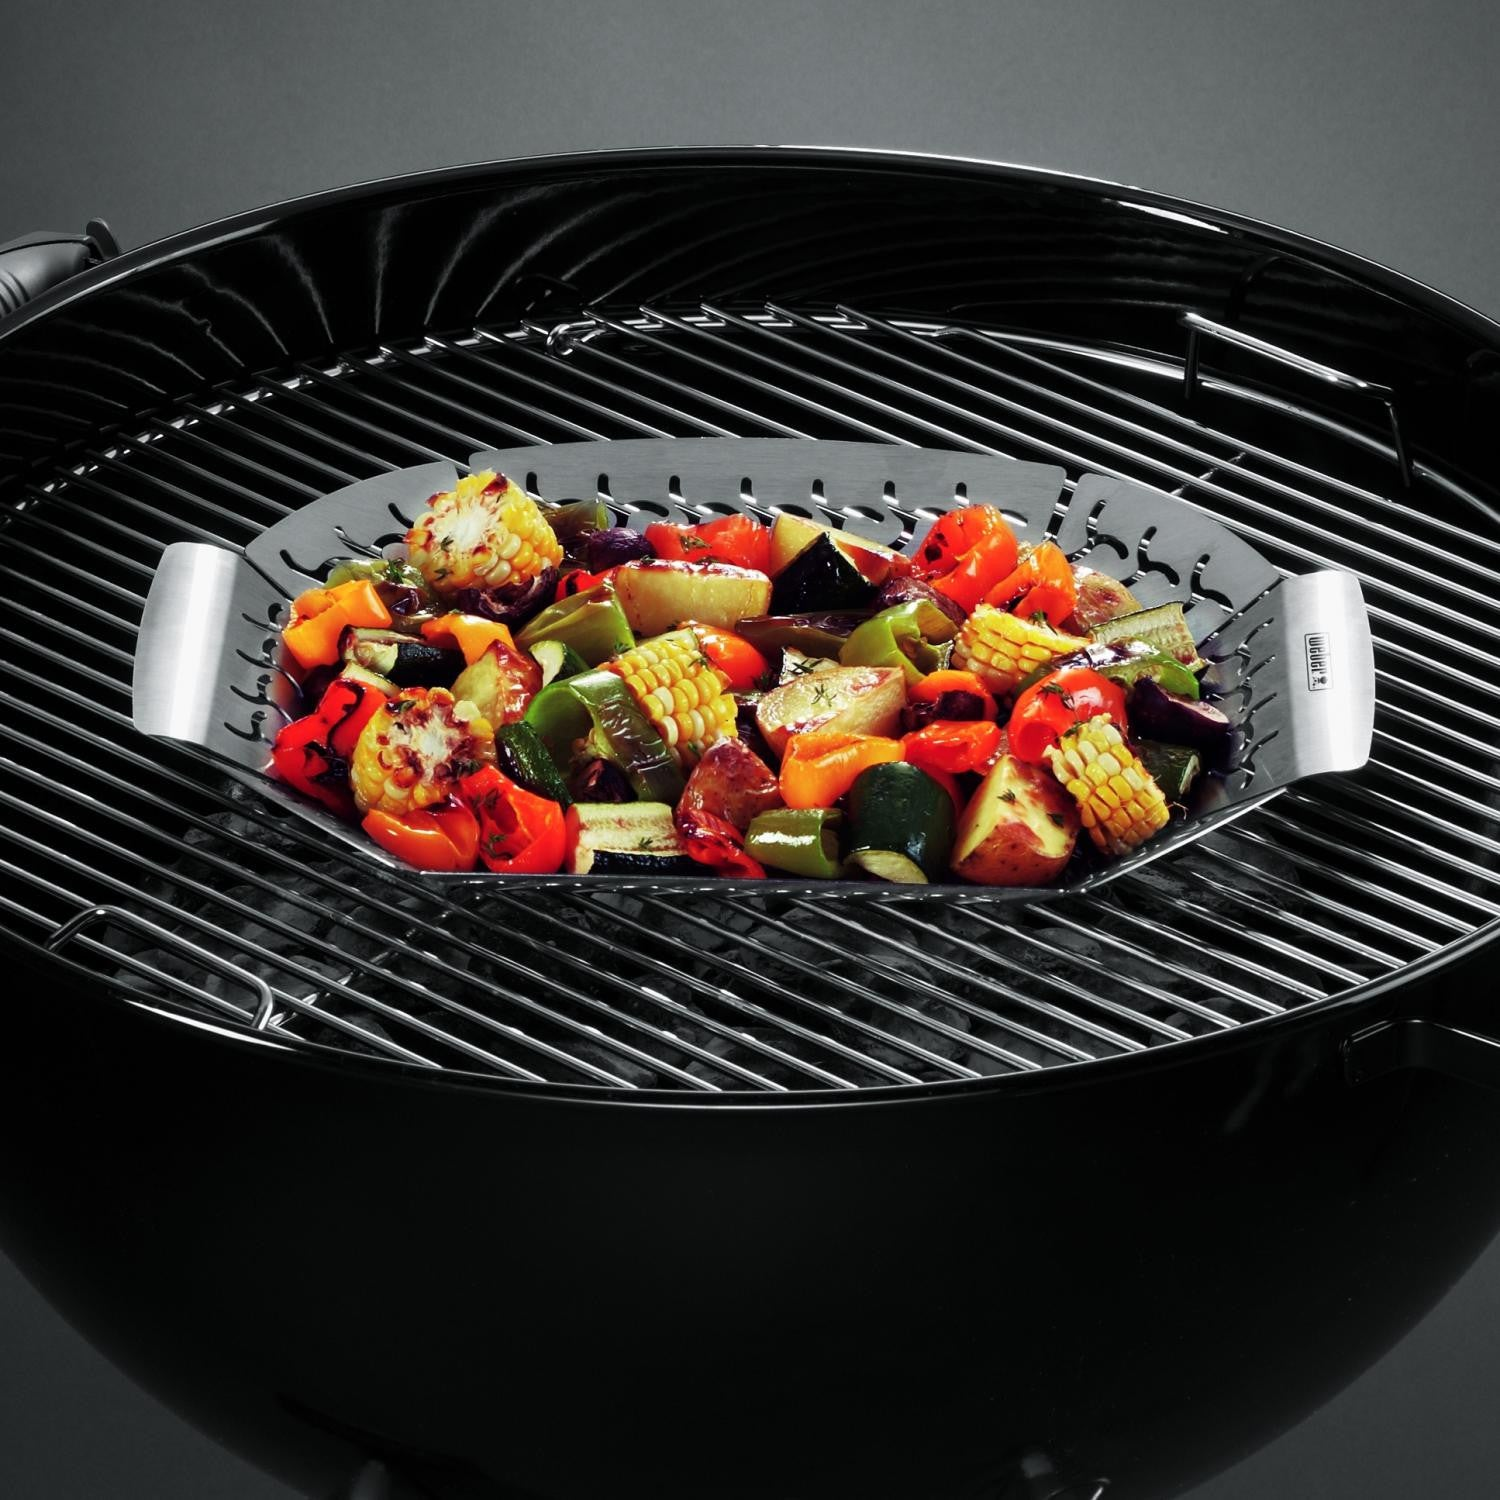 Weber 6678 Large Stainless Steel Grill Pan